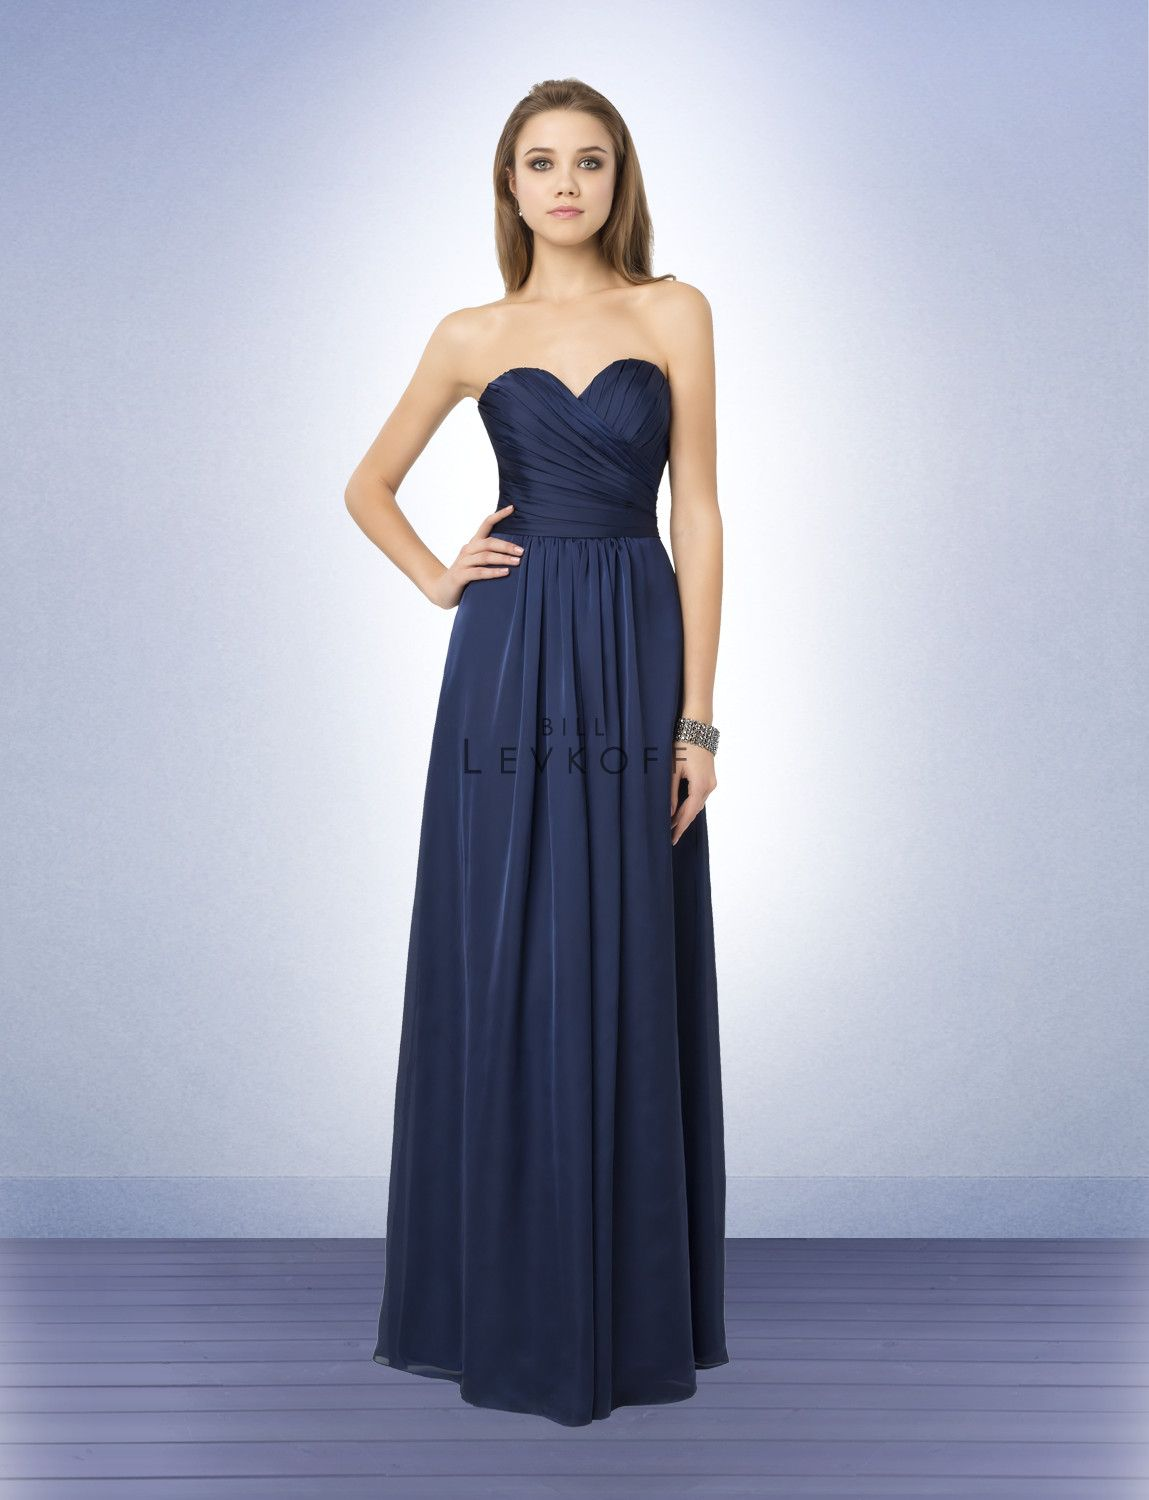 Bridesmaid dress style 790 satin chiffon gown with a sweetheart bridesmaid dress style 790 satin chiffon gown with a sweetheart neckline criss cross tucks and ombrellifo Choice Image